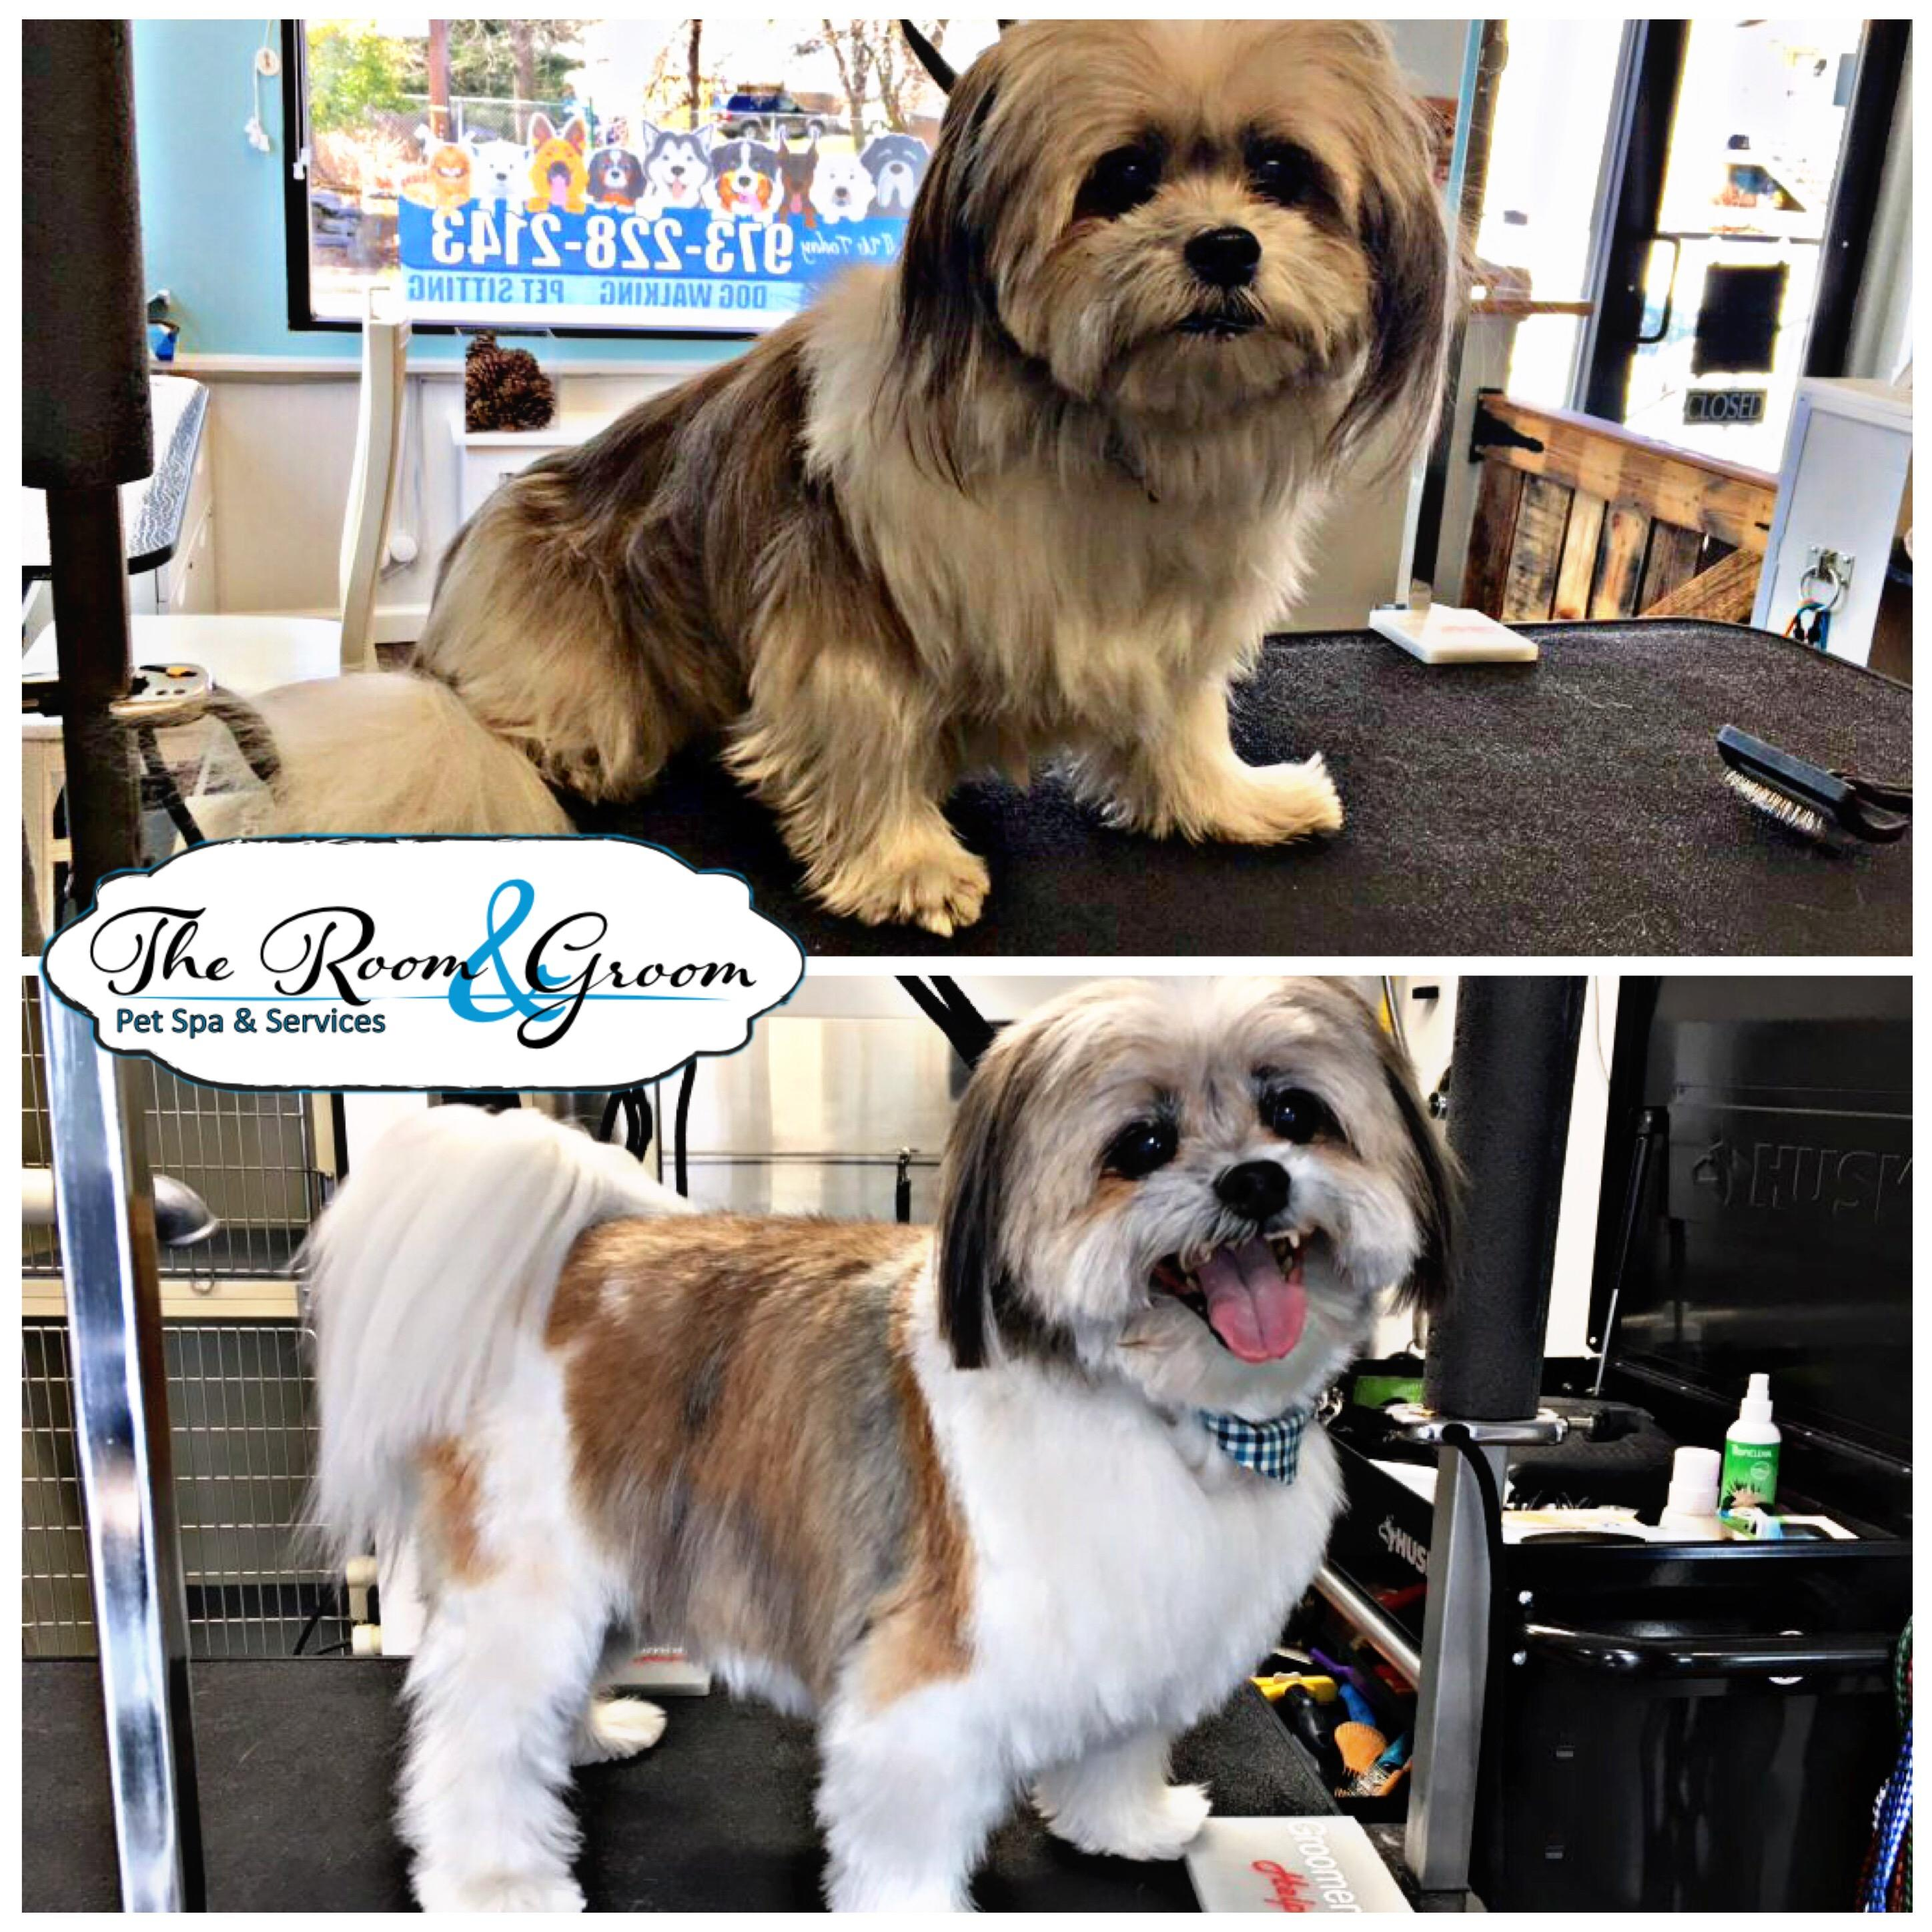 The Room & Groom, Pet Spa & Services image 50